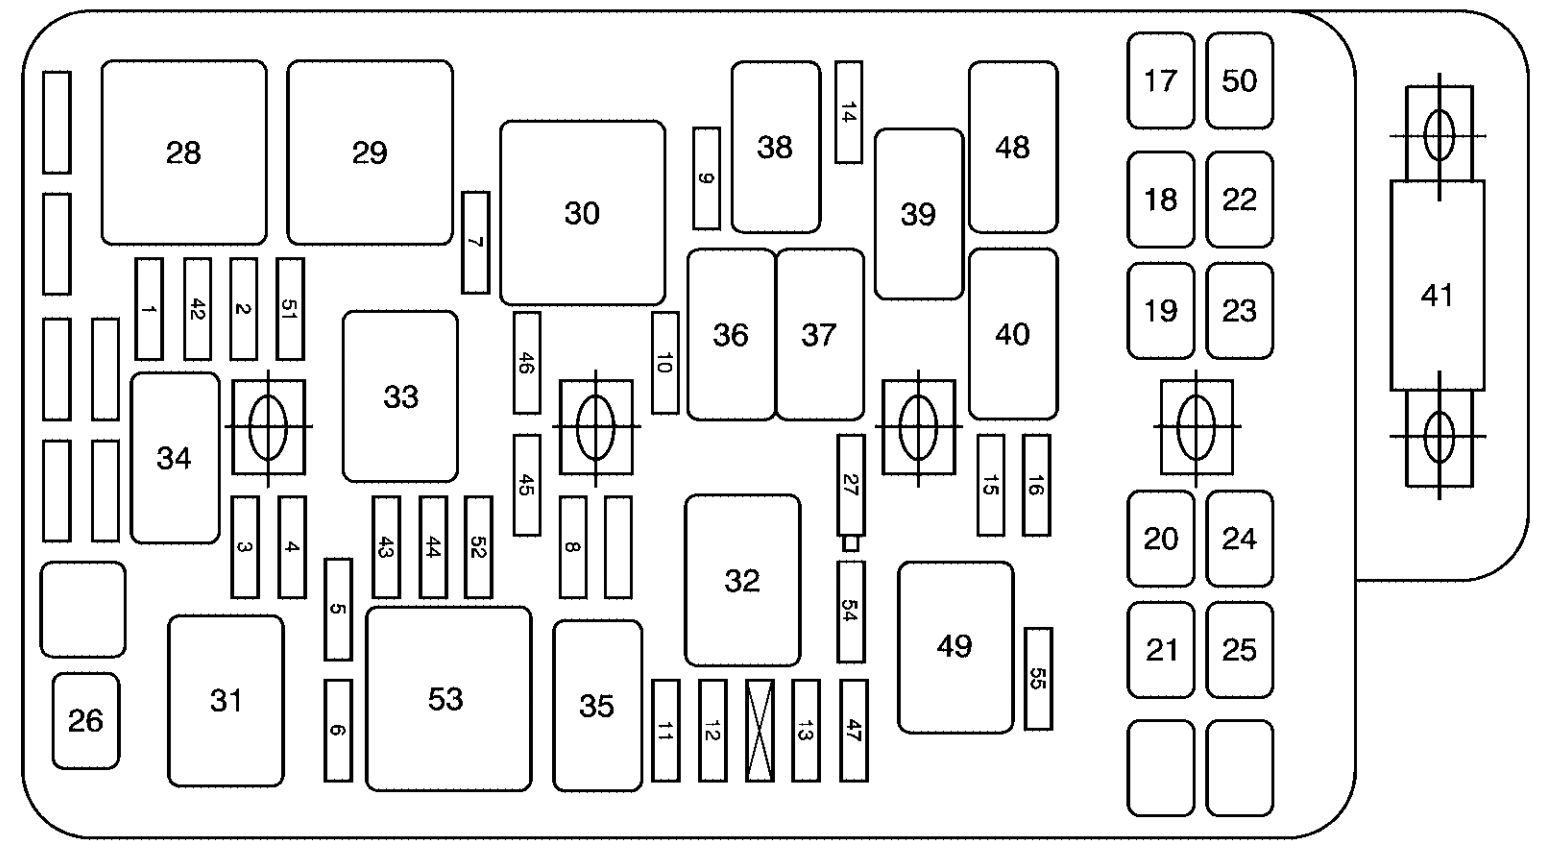 pontiac g6 fuse engine compartment g6 fuse box fuse diagram for 2006 pontiac grand am \u2022 wiring 2009 pontiac g5 fuse box location at n-0.co